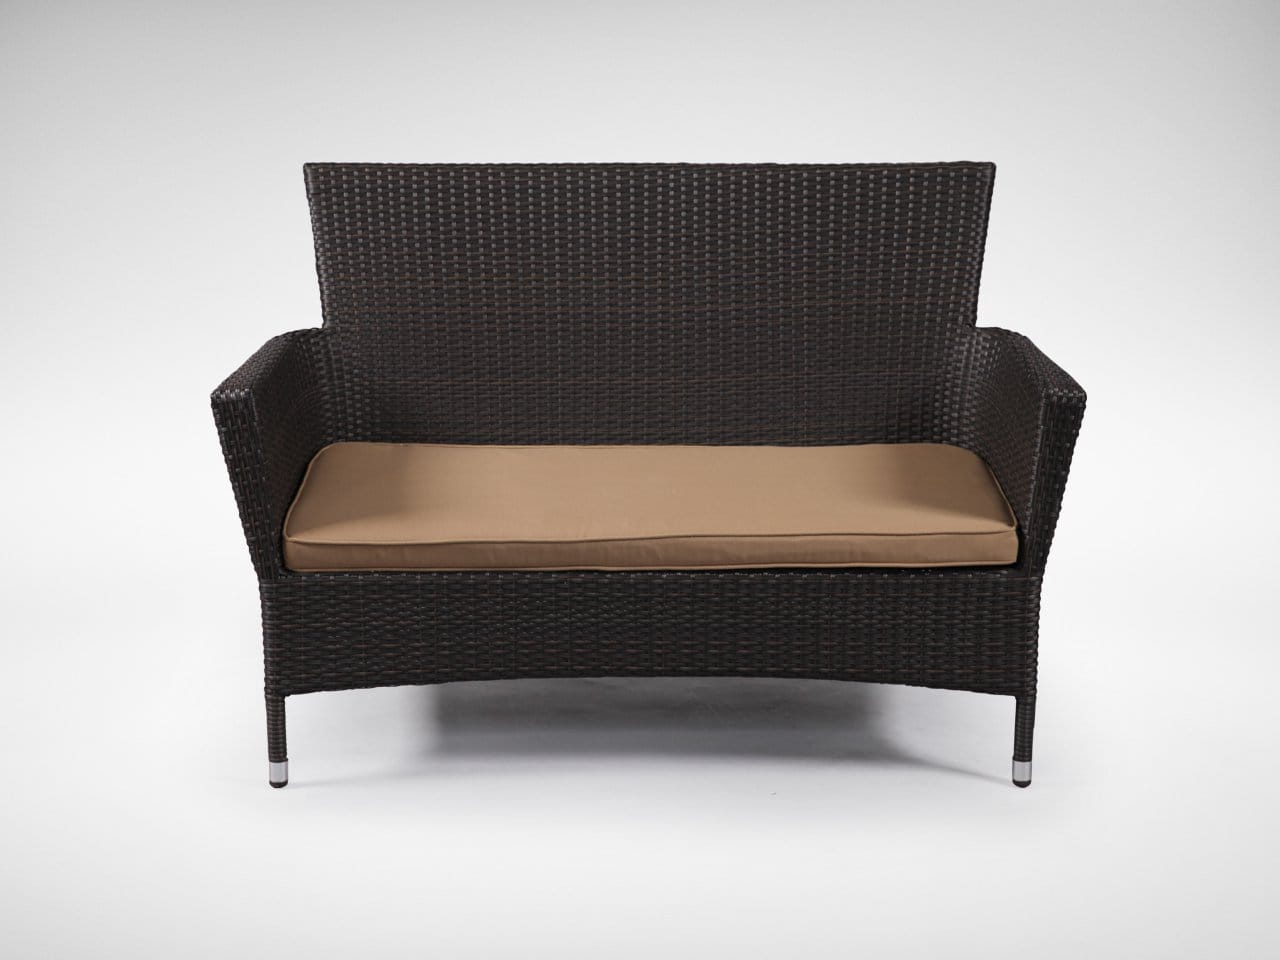 Bahamas Outdoor Sofa Comfort Design The Chair Amp Table